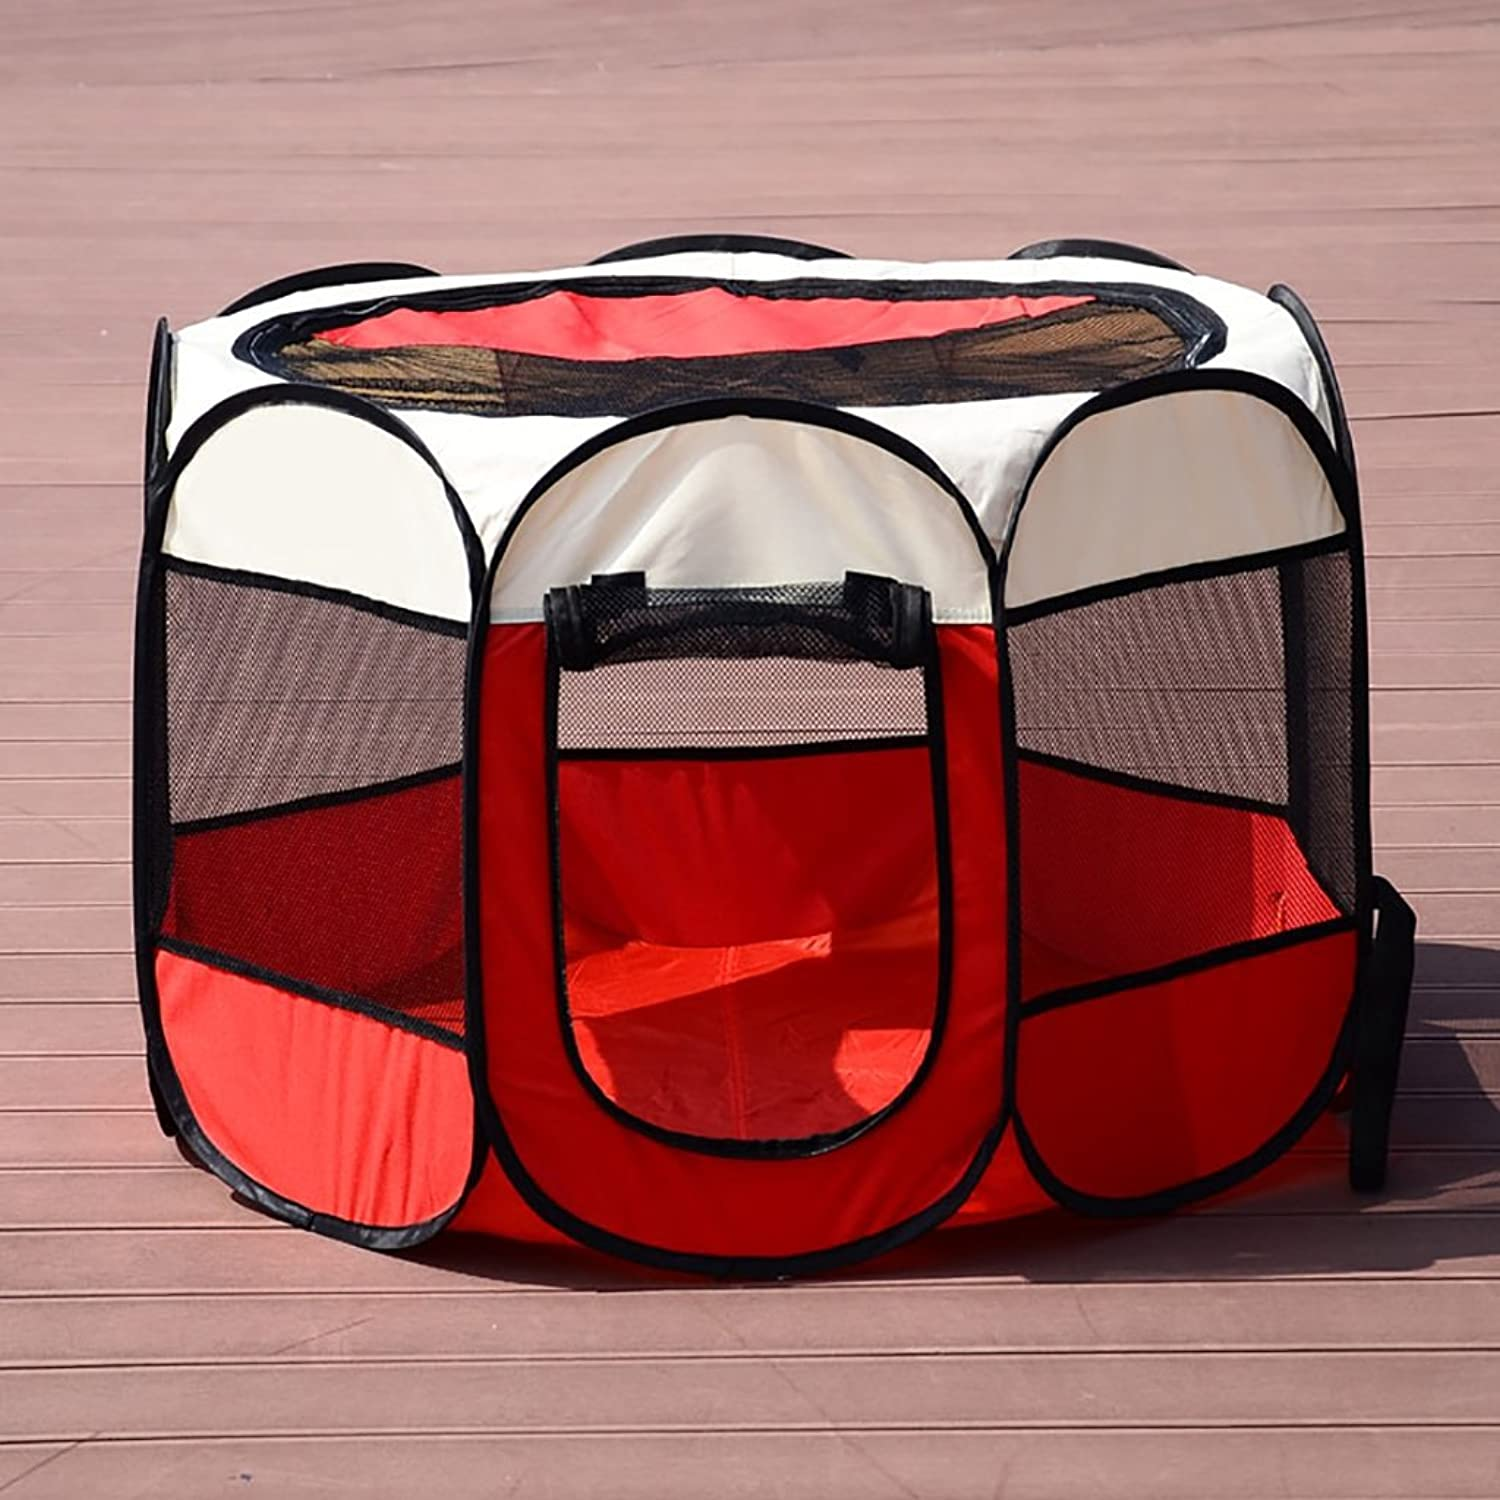 FPigSHS Cats and dogs Housing fold Easy to carry outdoor pet nest (color   Watermelon red)